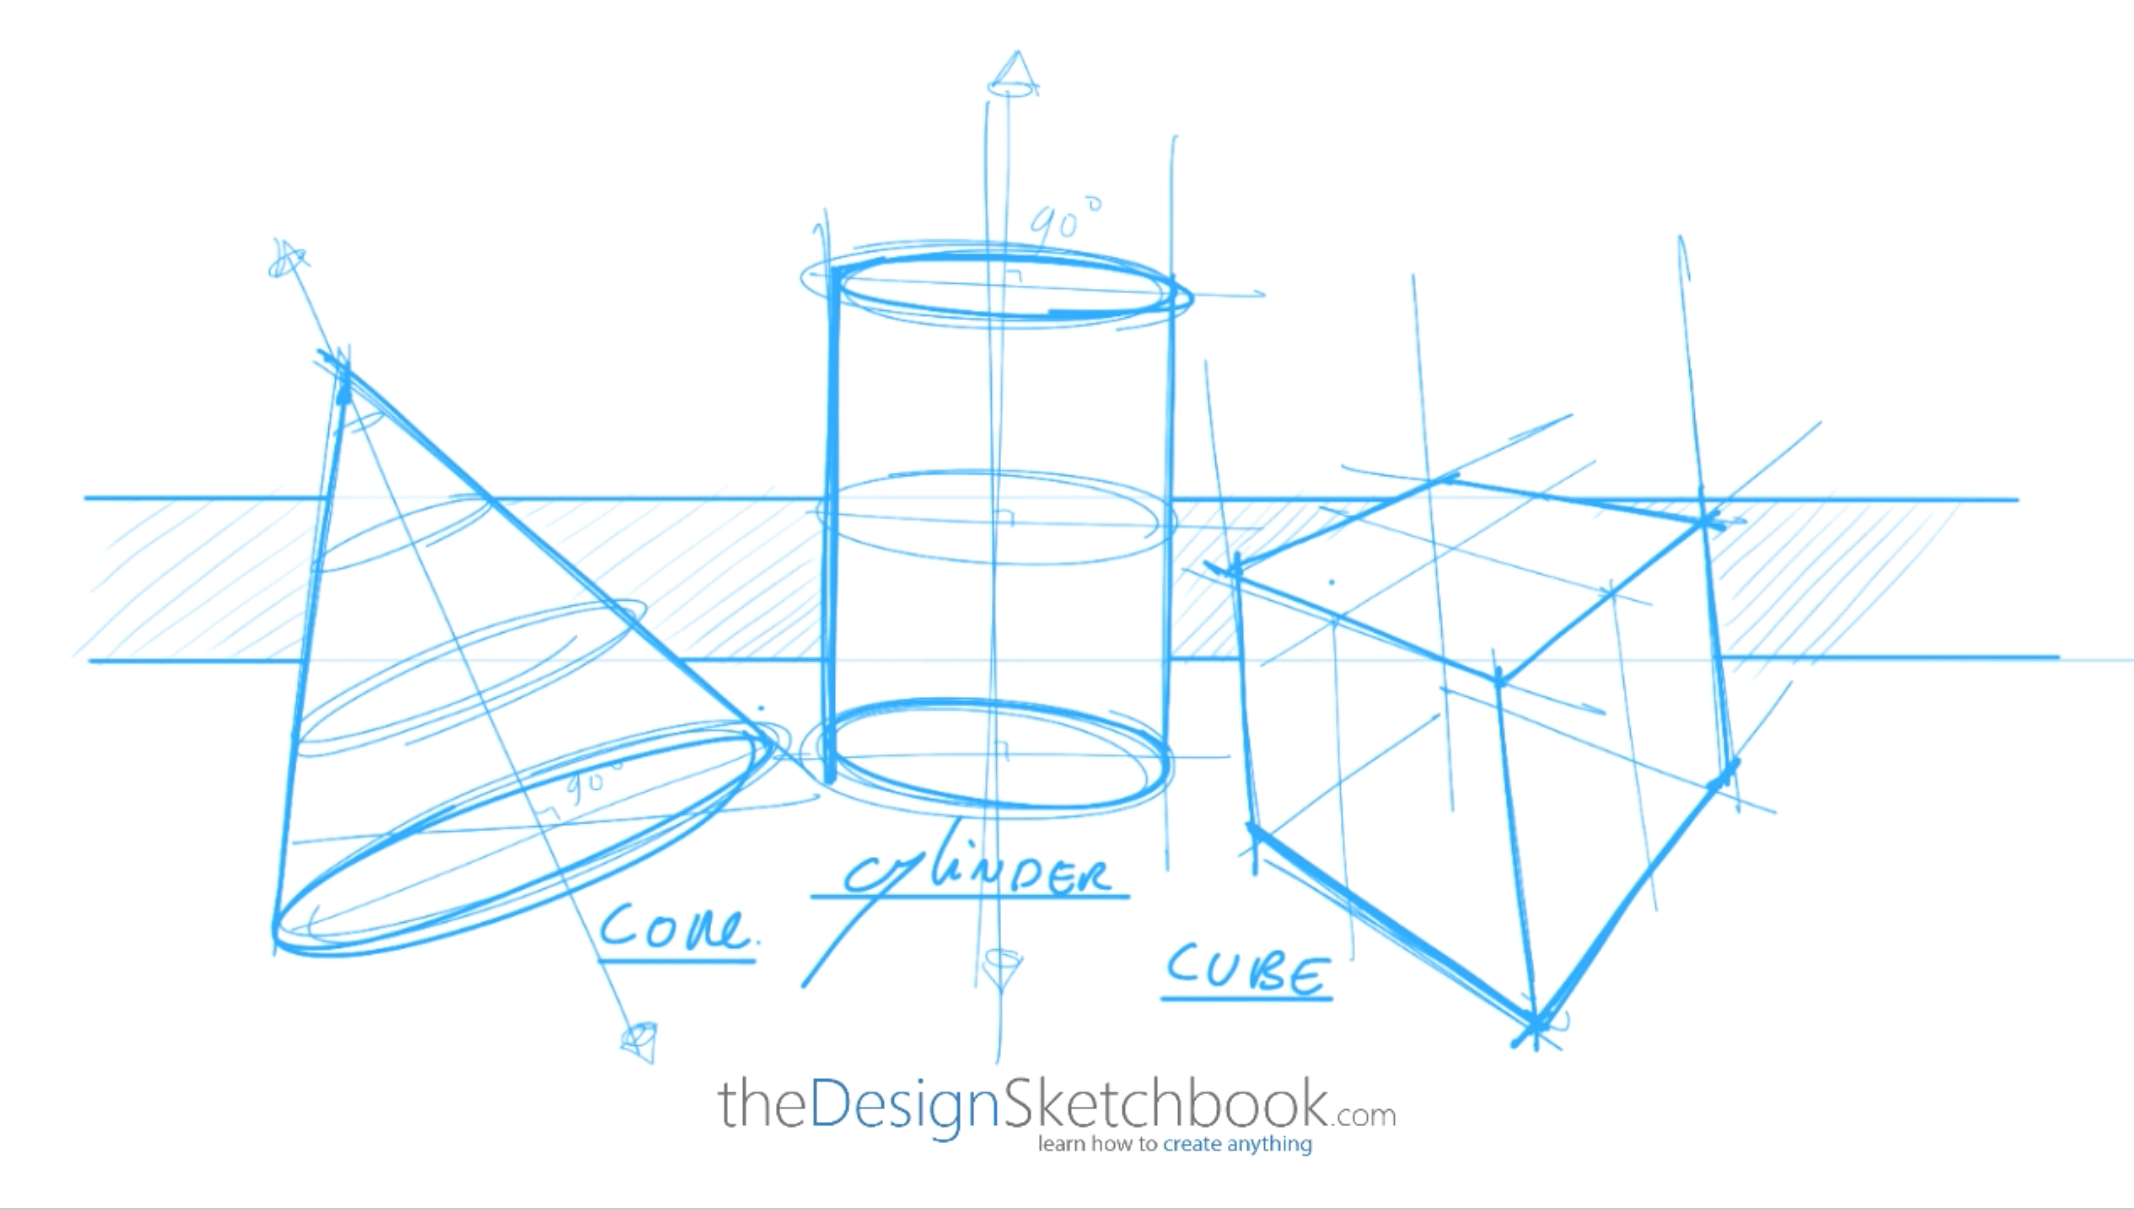 How to draw basic 3d volumes - cone - cube - cylinder - the design sketchbook - a